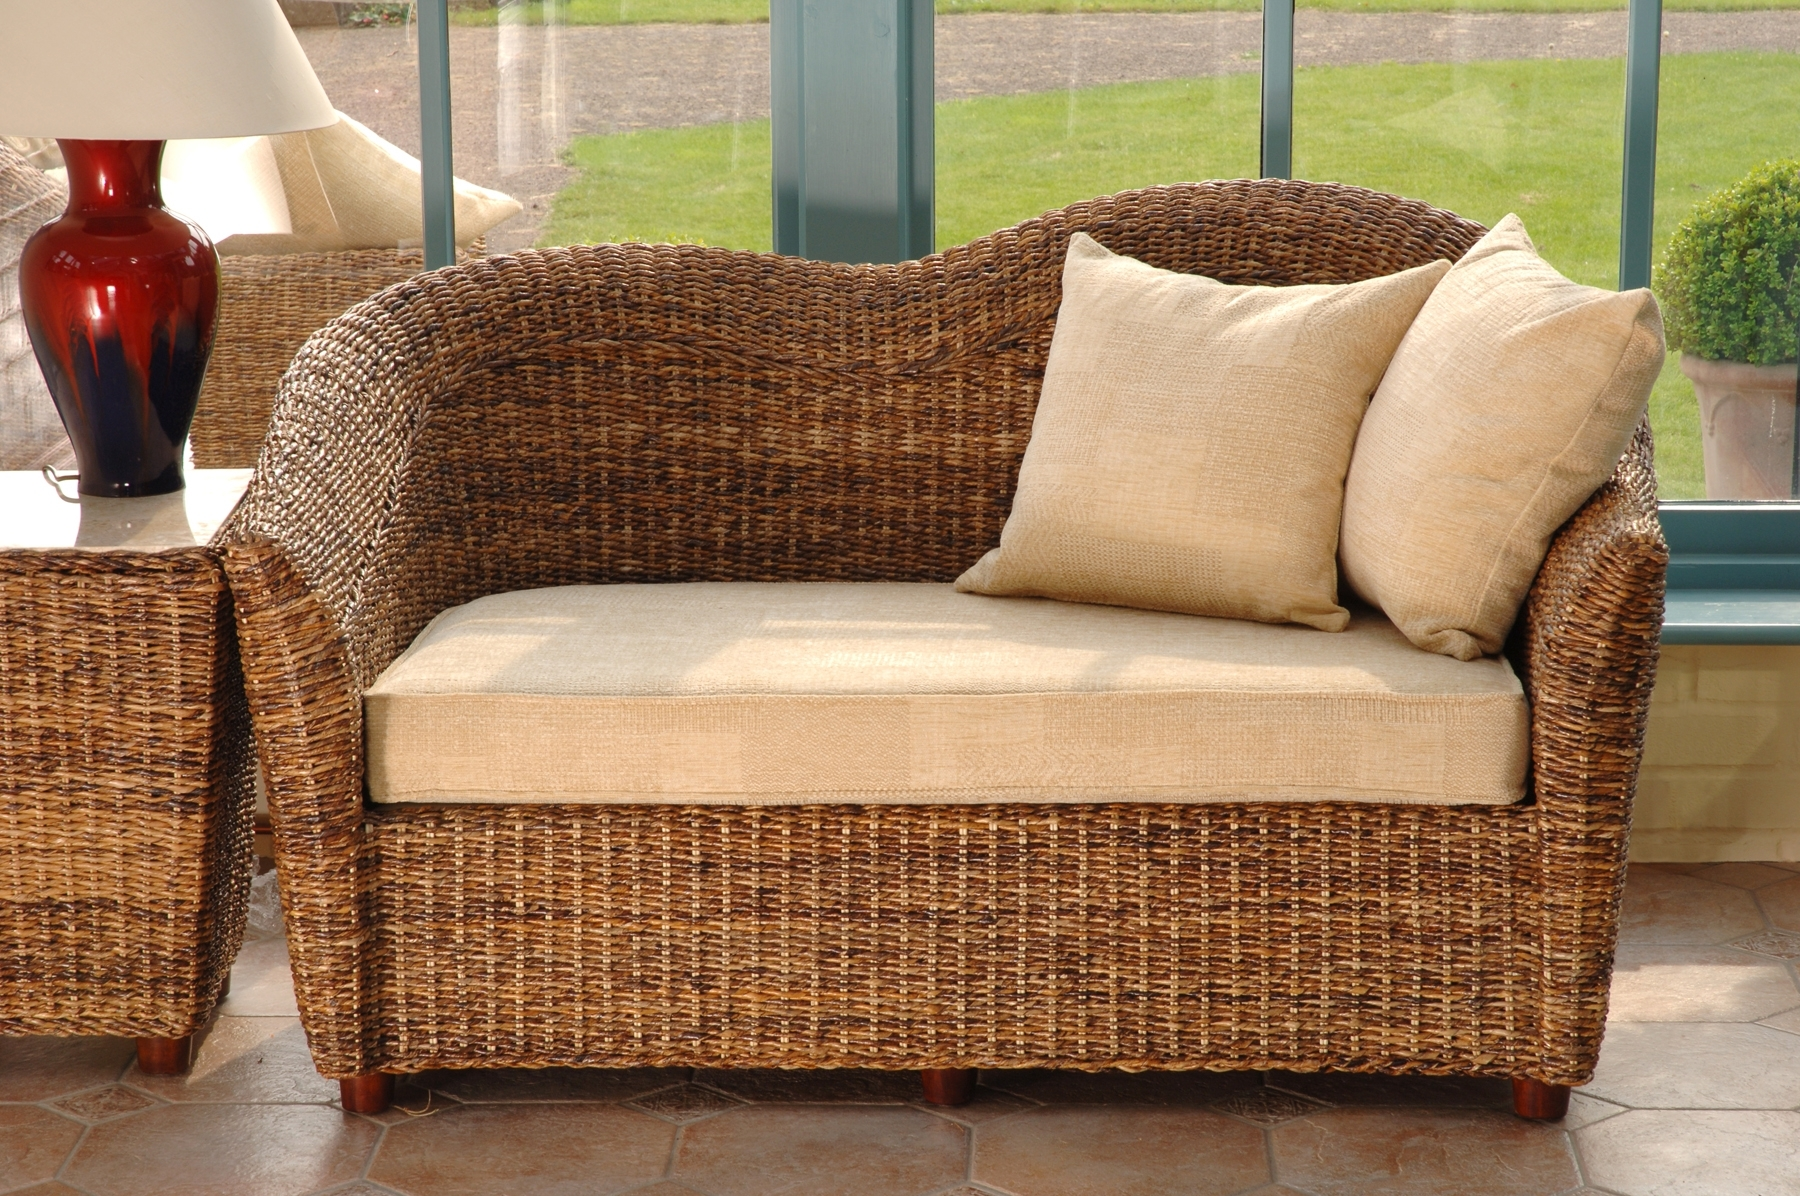 Fashionable Cane Conservatory Furniture (View 11 of 20)